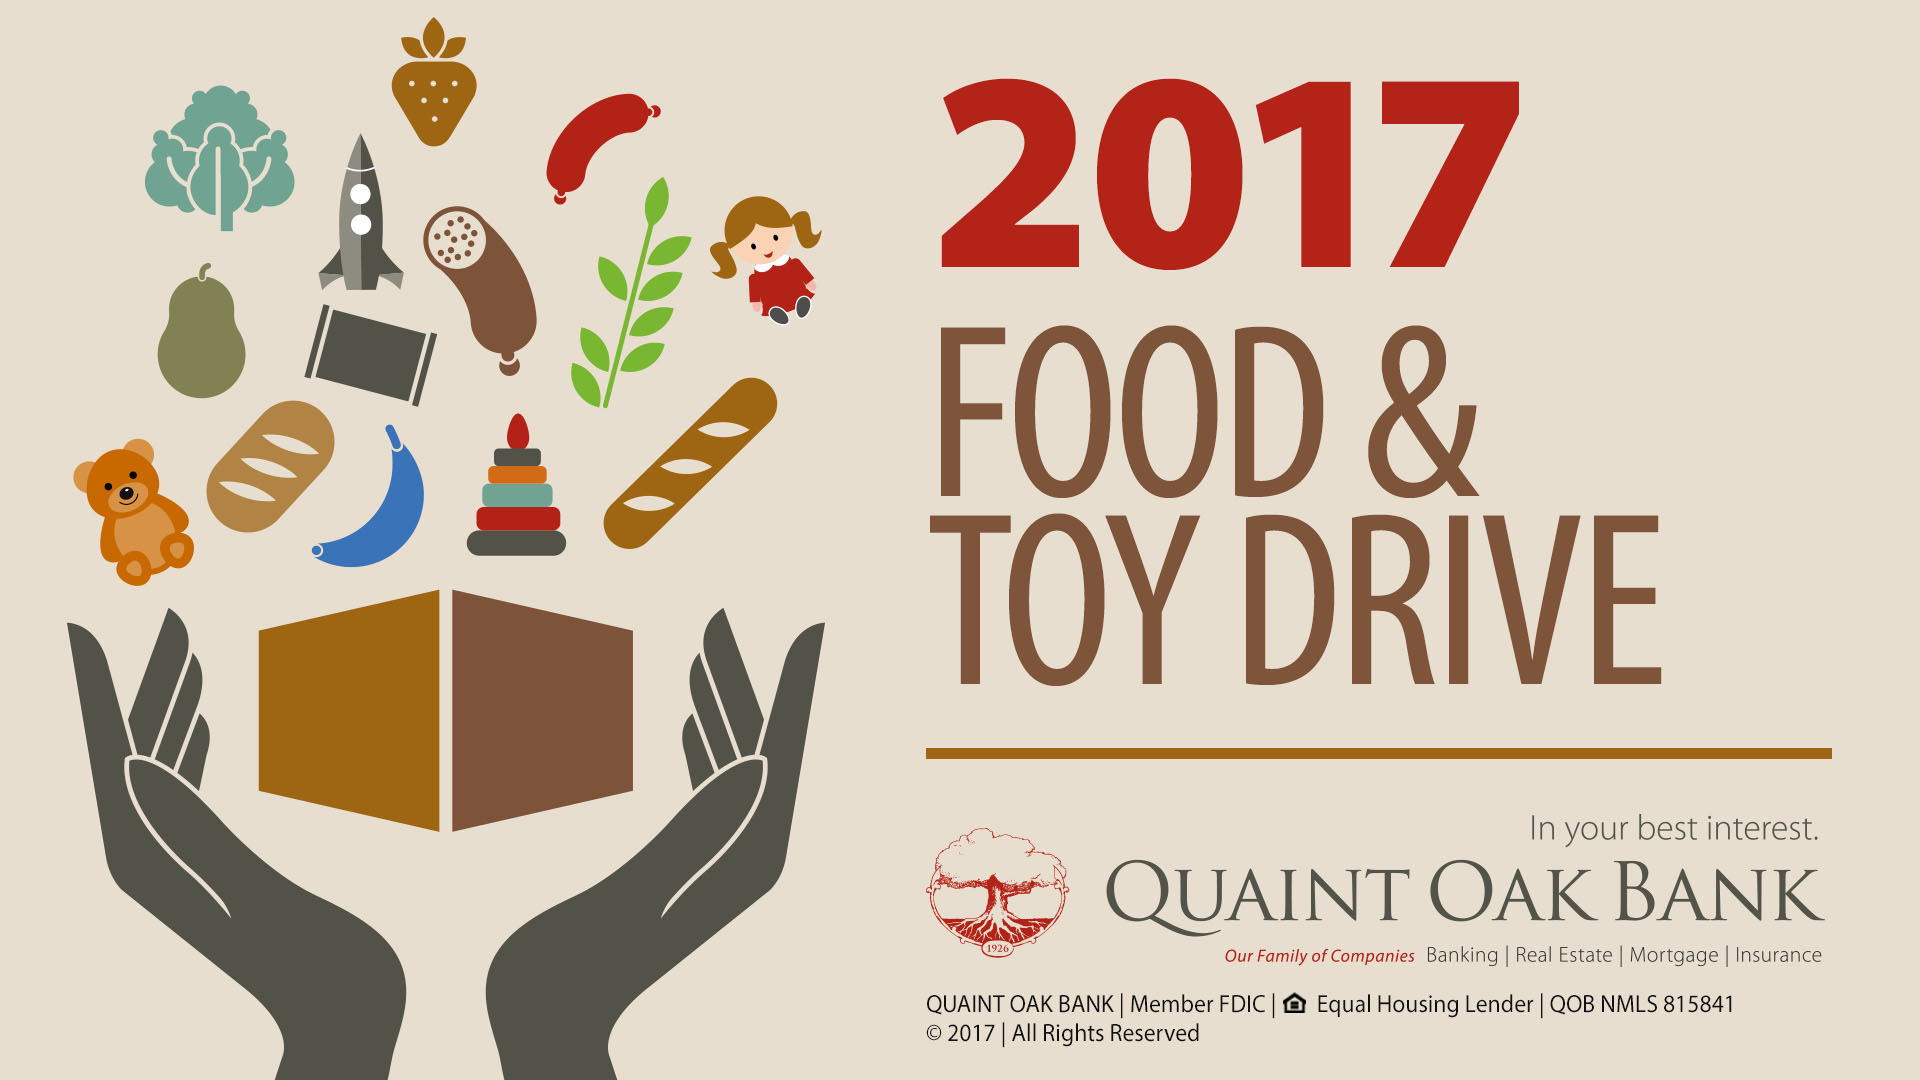 Image for QOB 2017 Food & Toy Drive